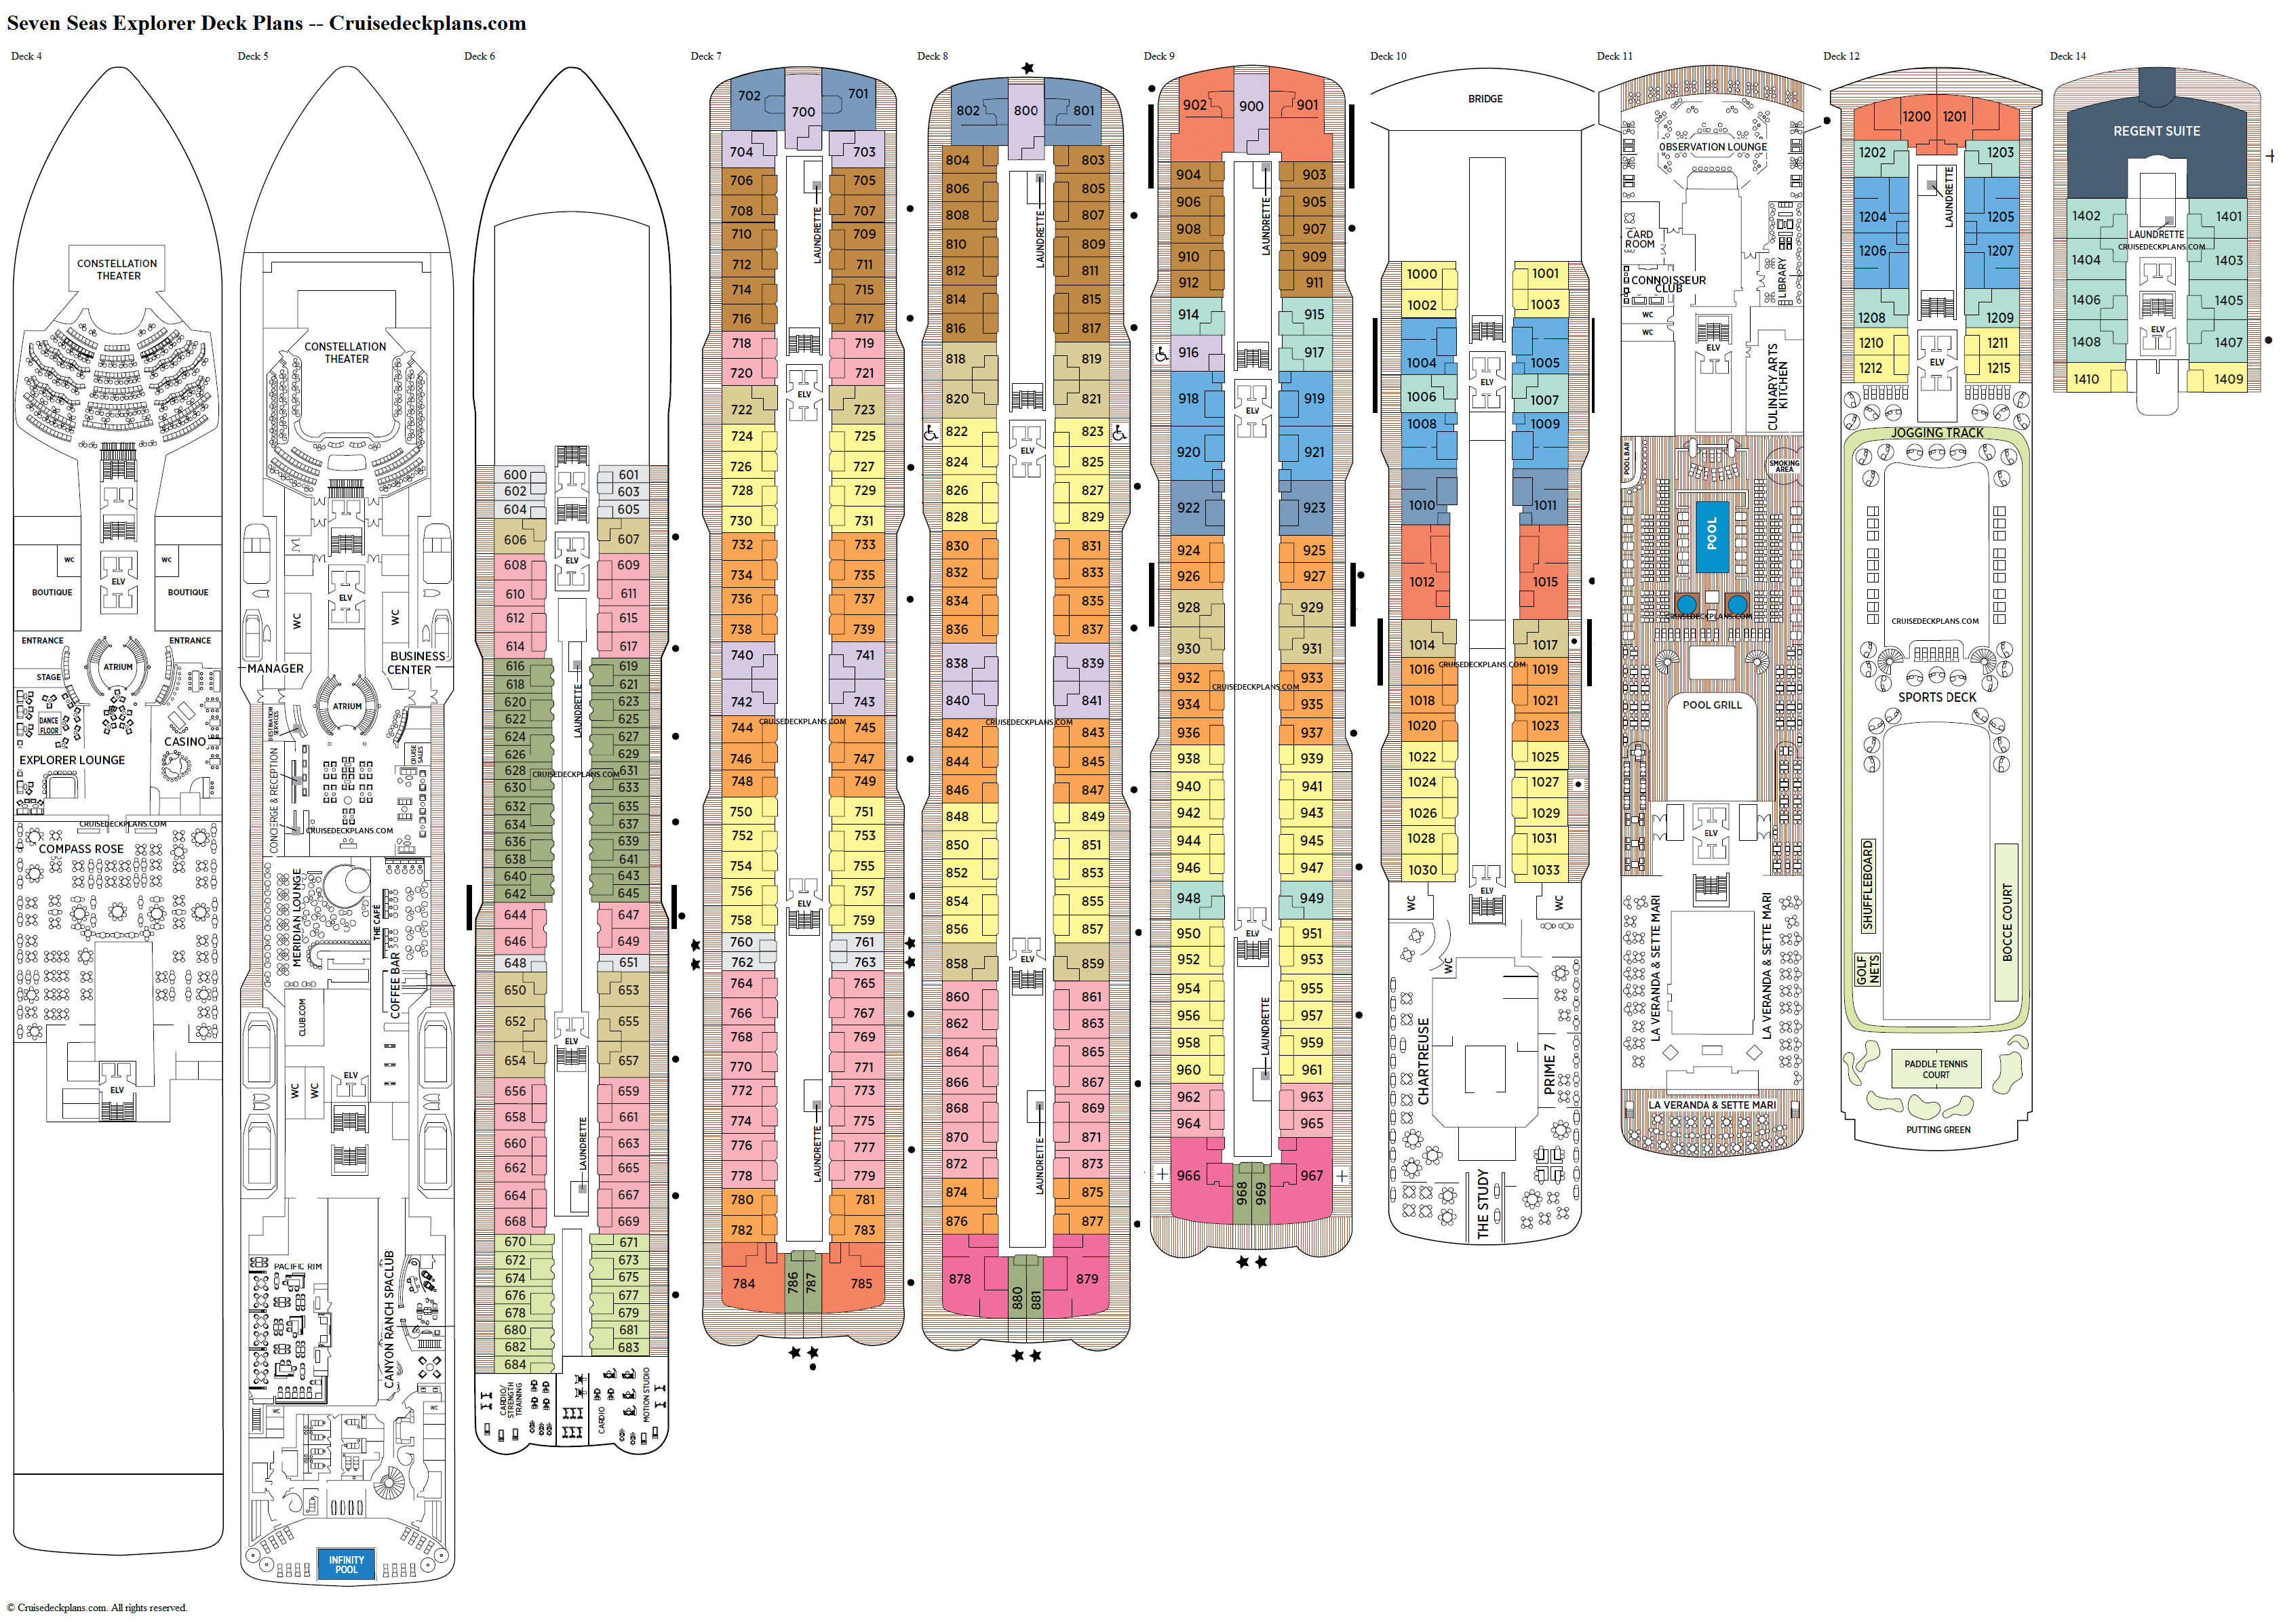 Seven Seas Explorer deck plans image